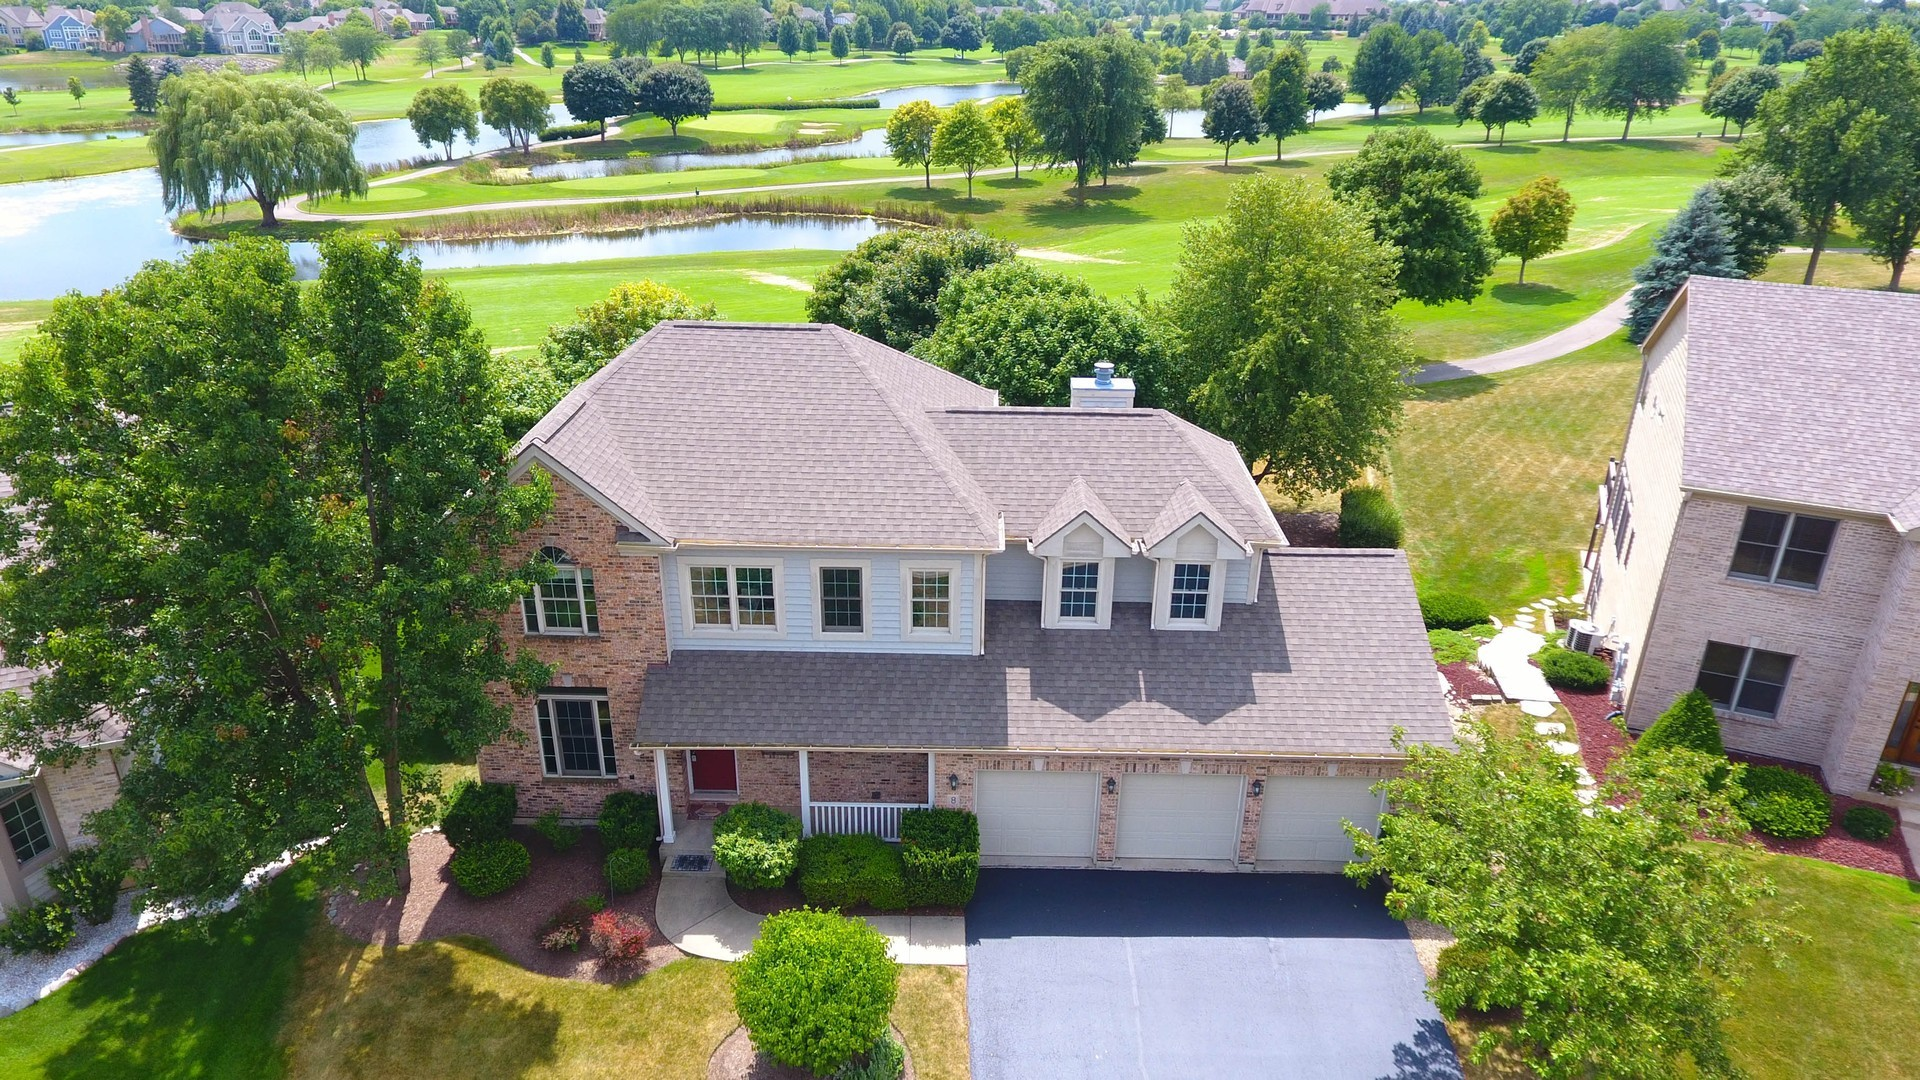 Property for sale at 8 Twelve Lakes Court, Lake In The Hills,  Il 60156